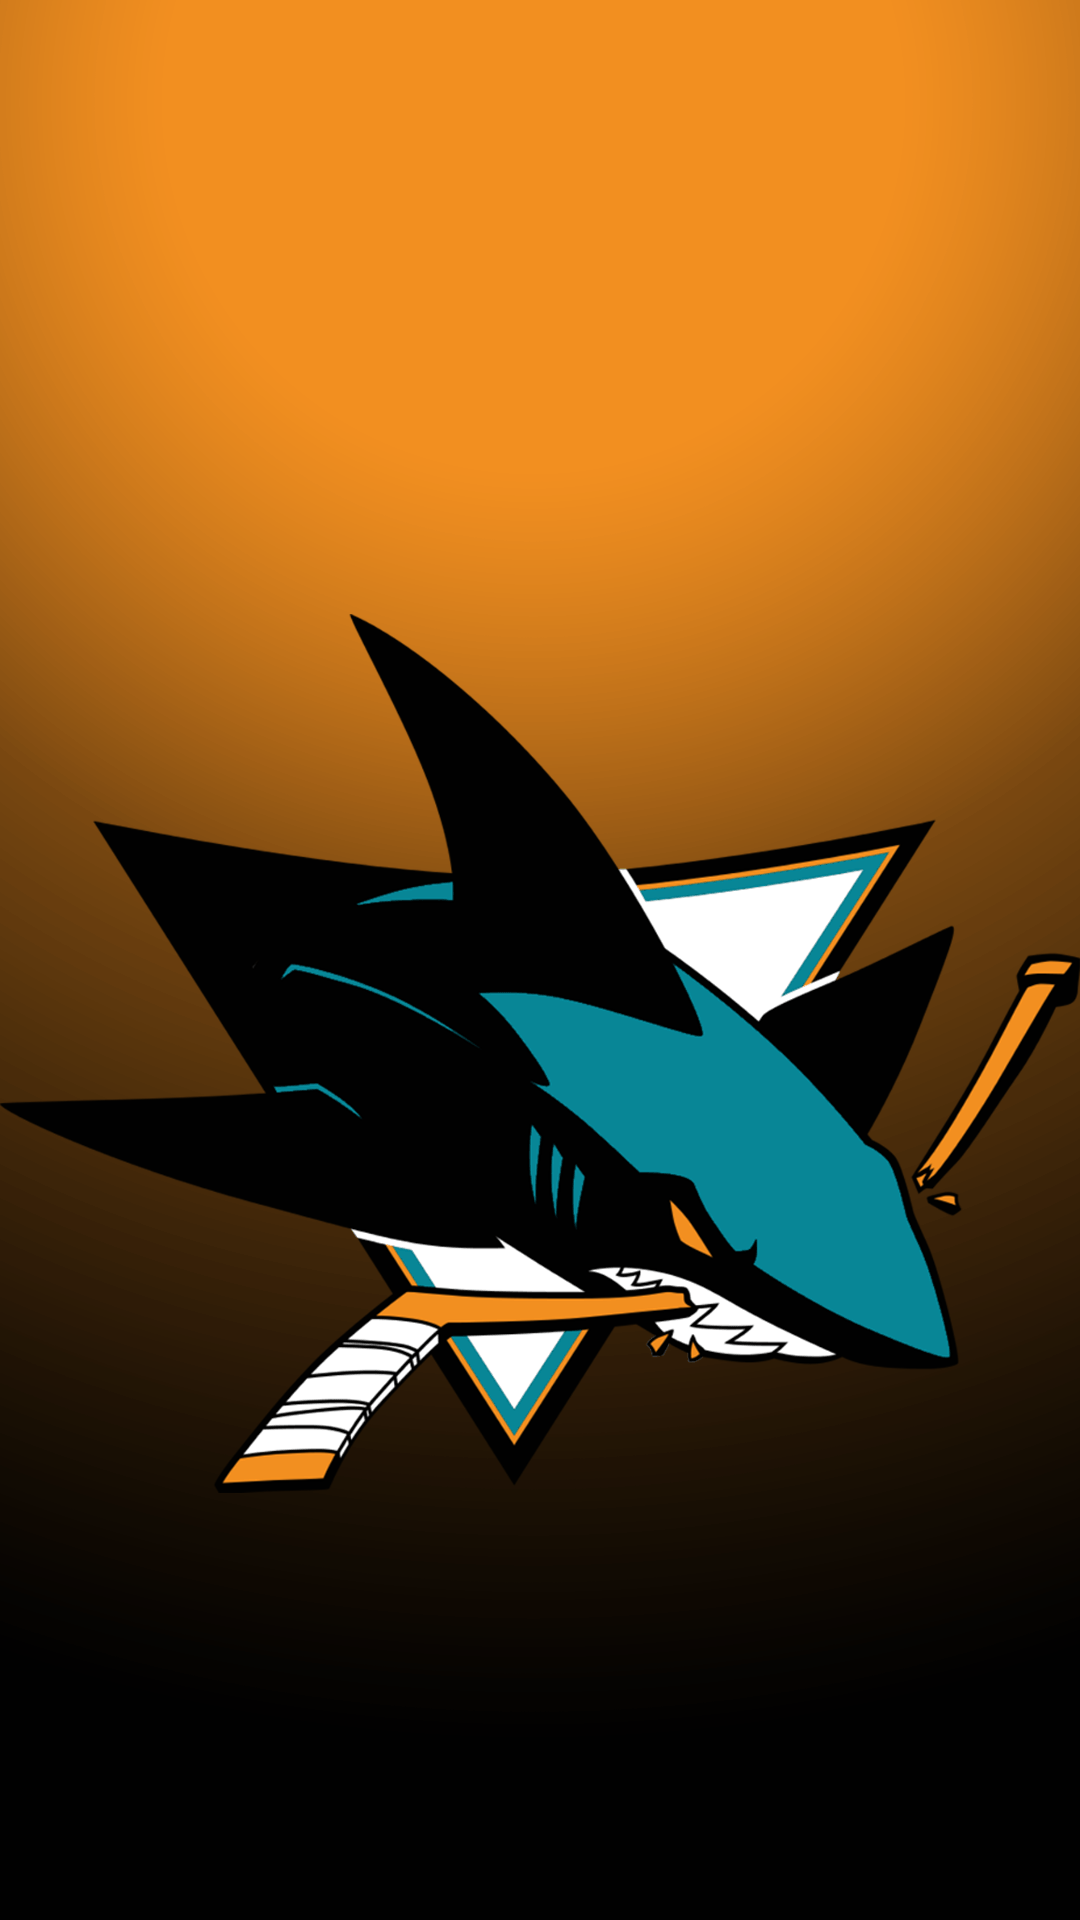 San Jose Sharks Wallpaper (37+), Download 4K Wallpapers For Free